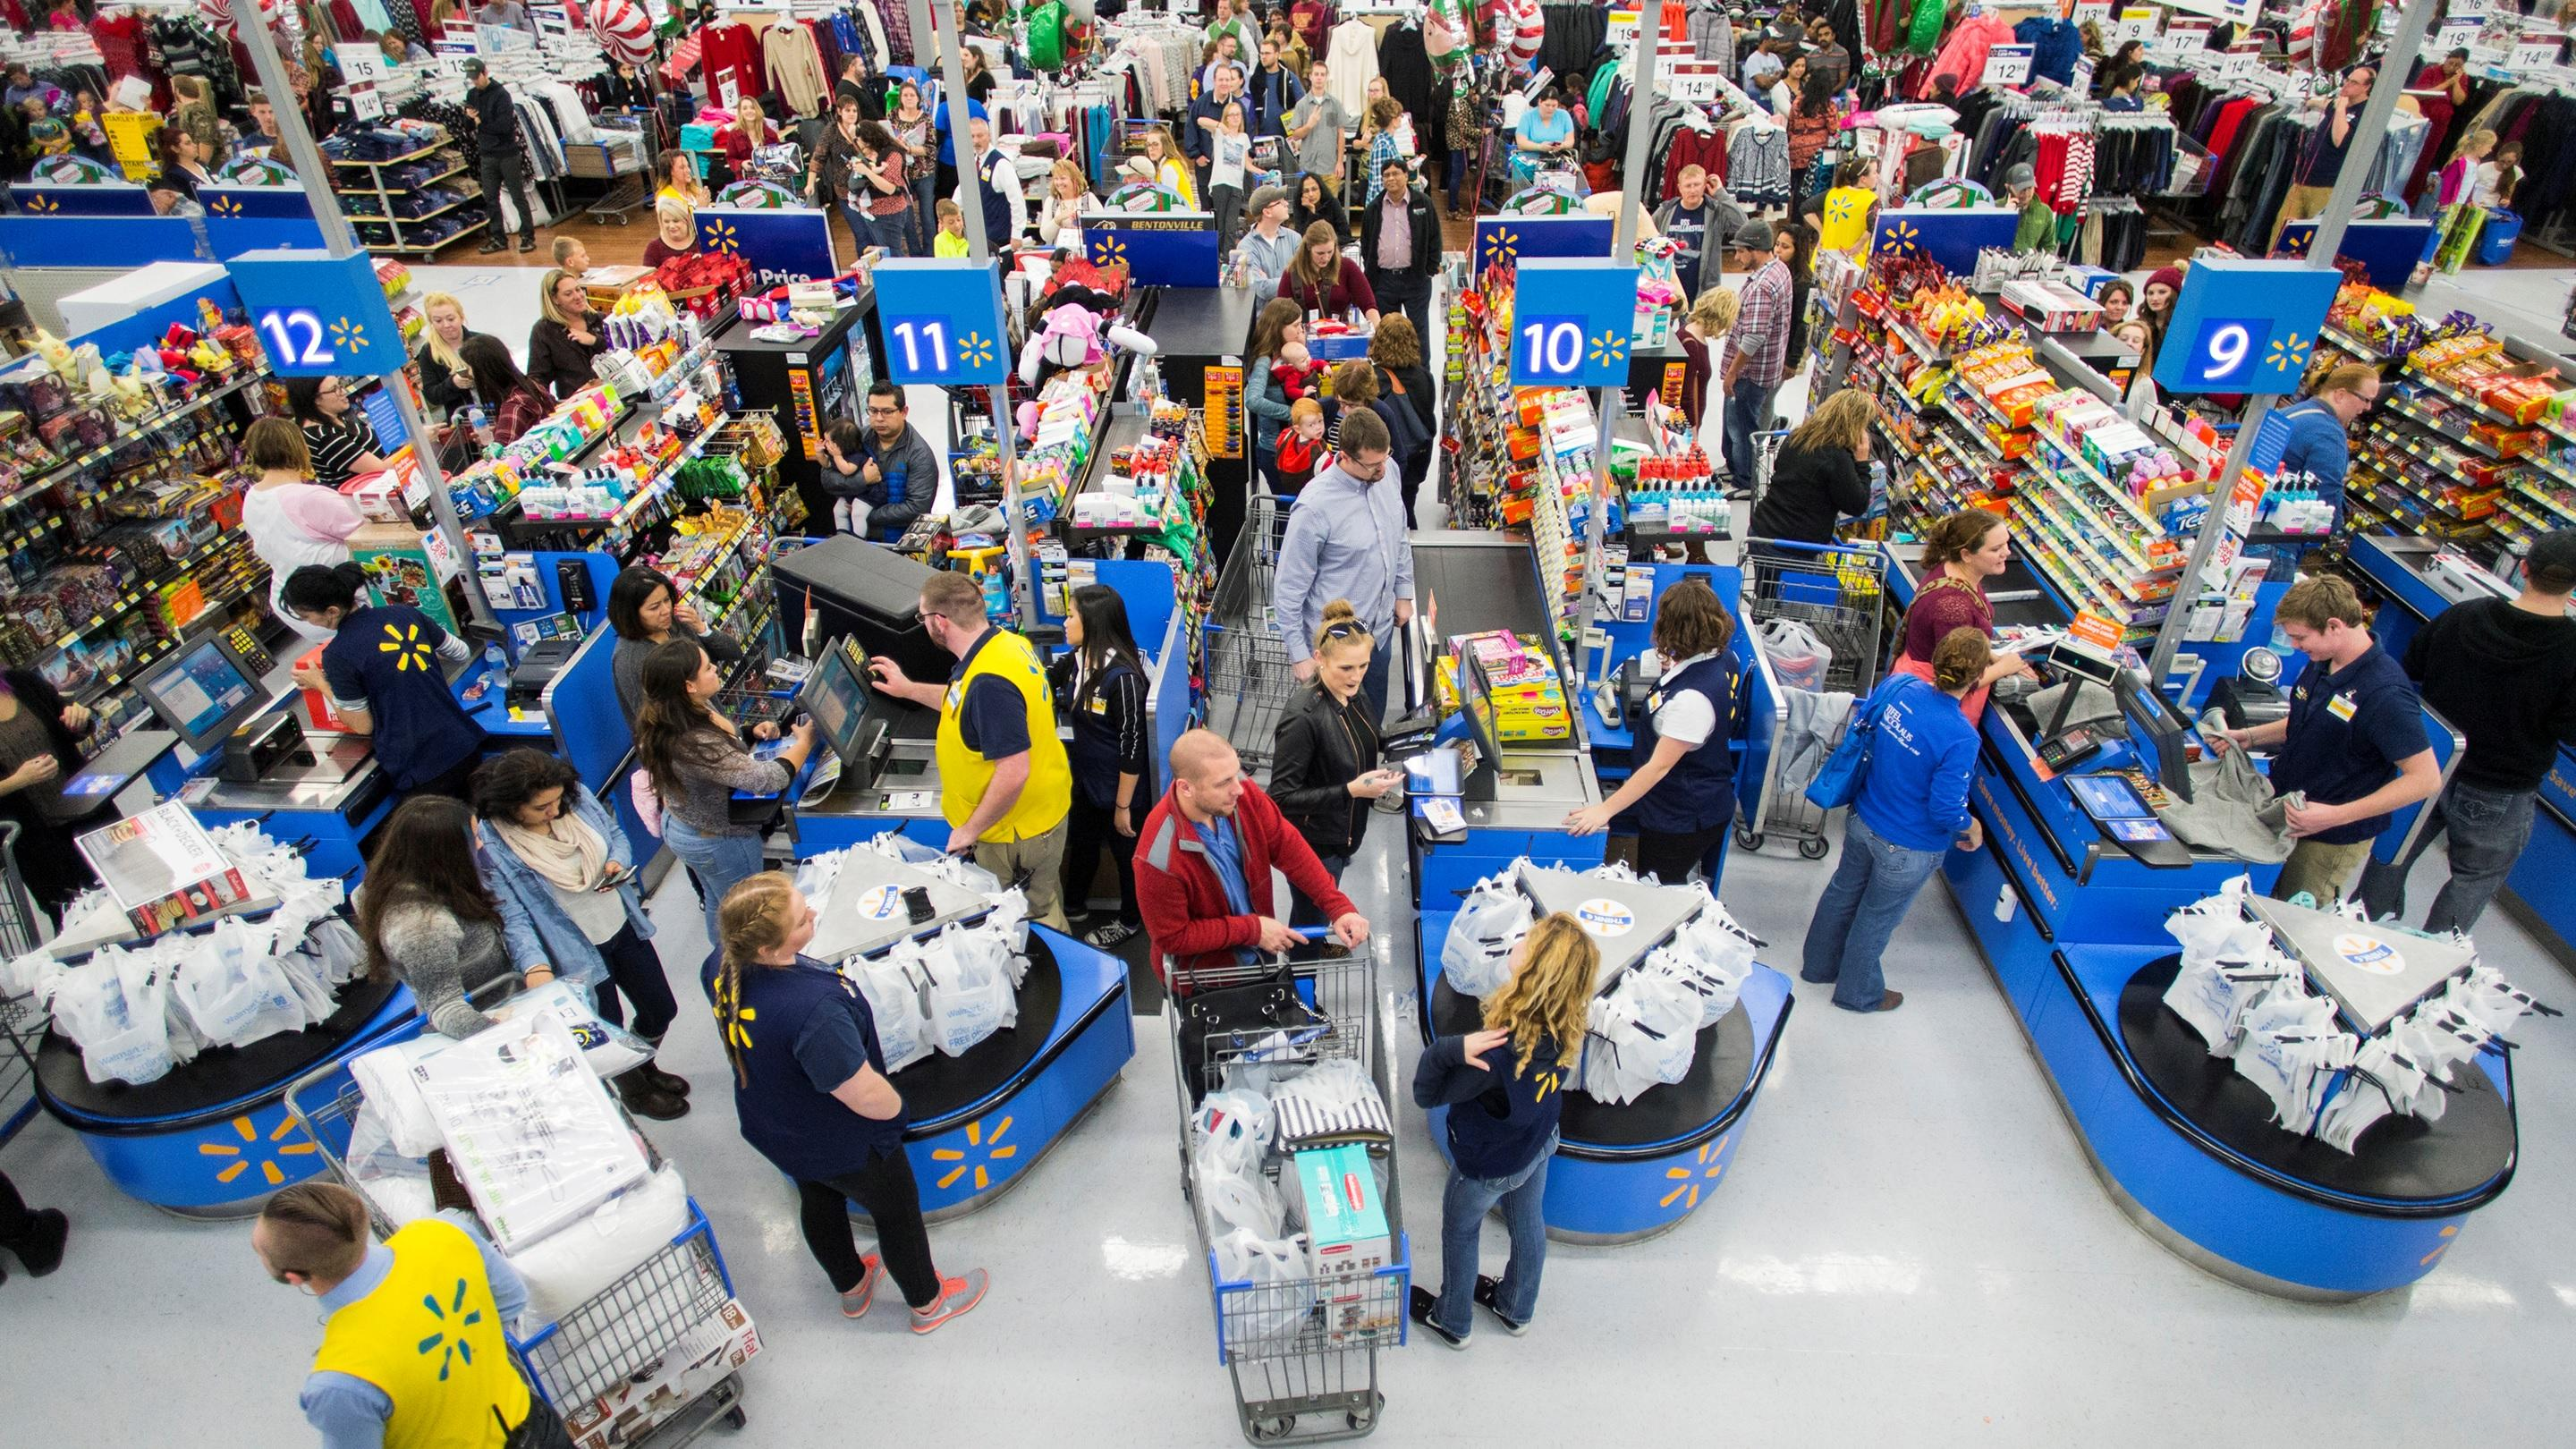 Wal-Mart Continues to Grow, but at What Cost?